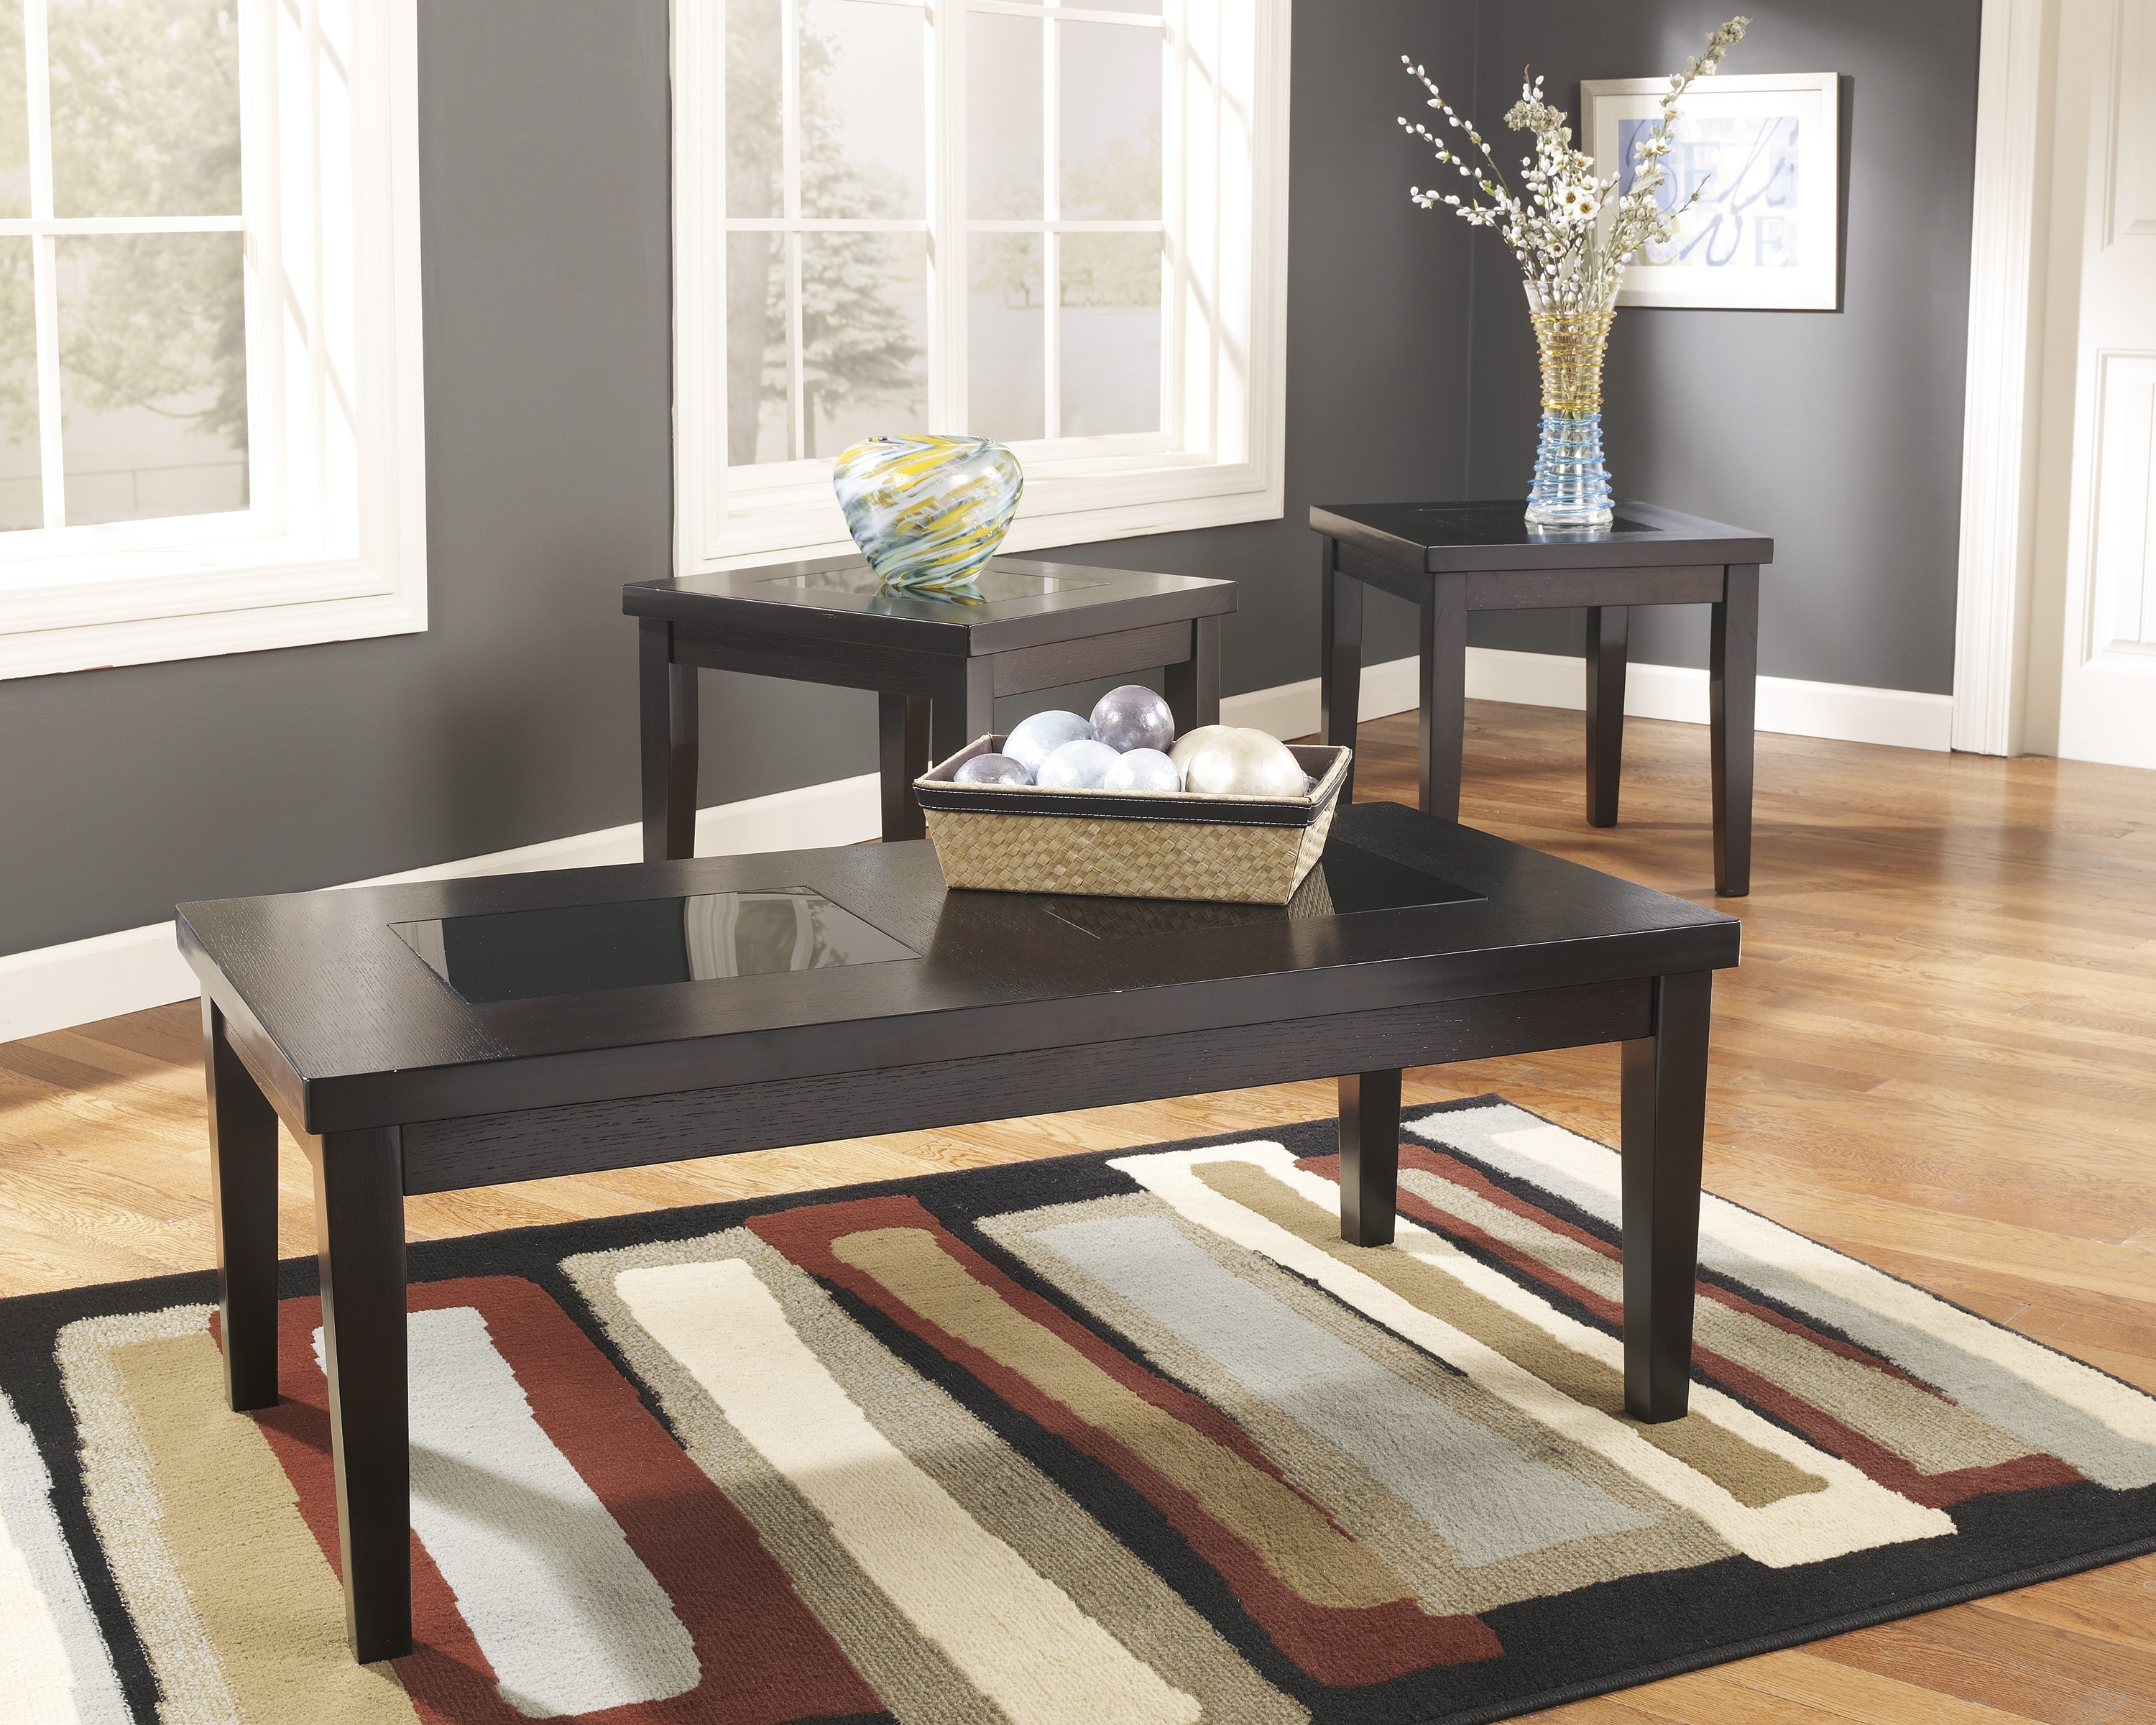 Best ideas about Ashley Furniture Coffee Tables . Save or Pin 58 Ashley Coffee Table Set Buy Ashley Furniture T352 13 Now.